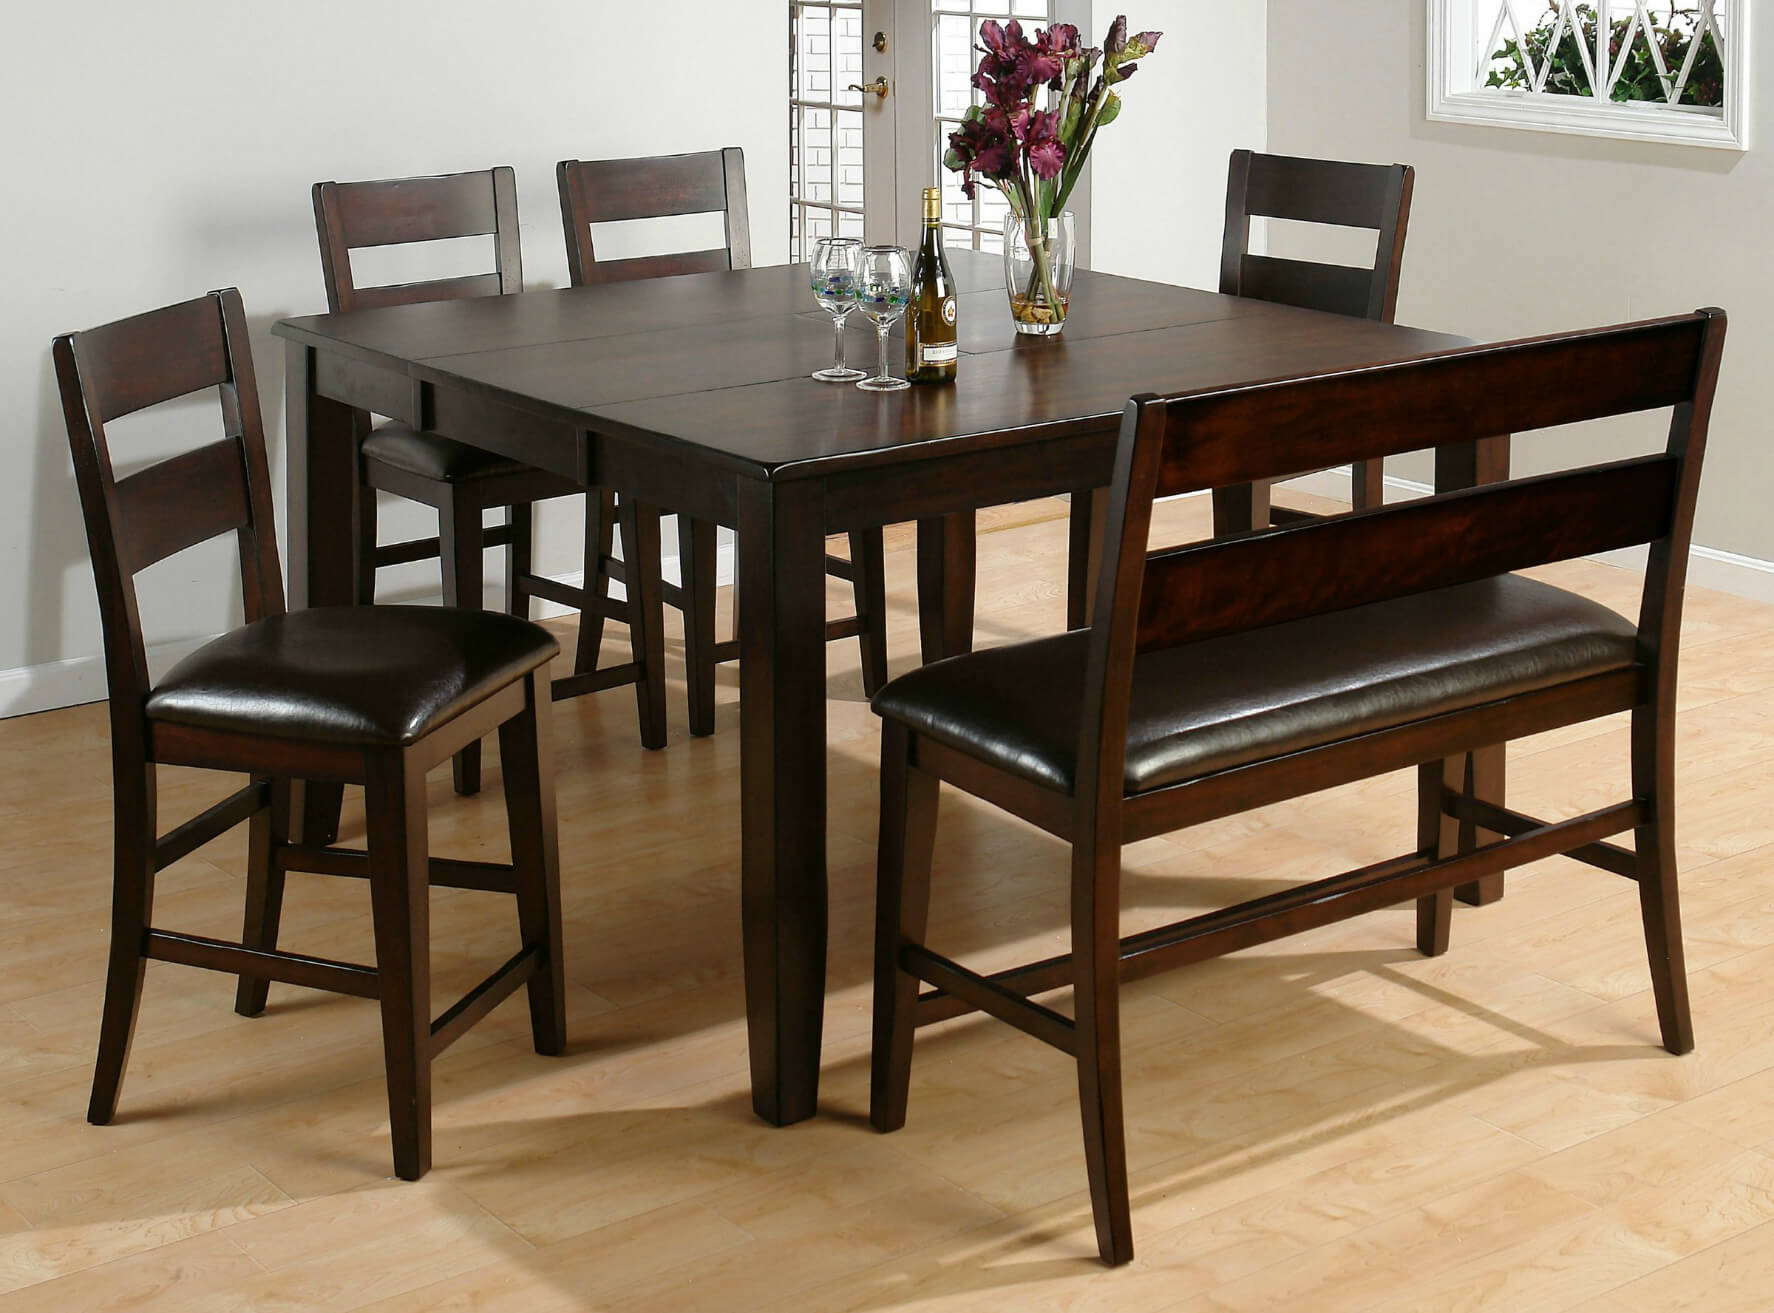 Hereu0027s A Counter Height Square Dining Room Table With Bench. Moreover, The  Bench Includes Part 75